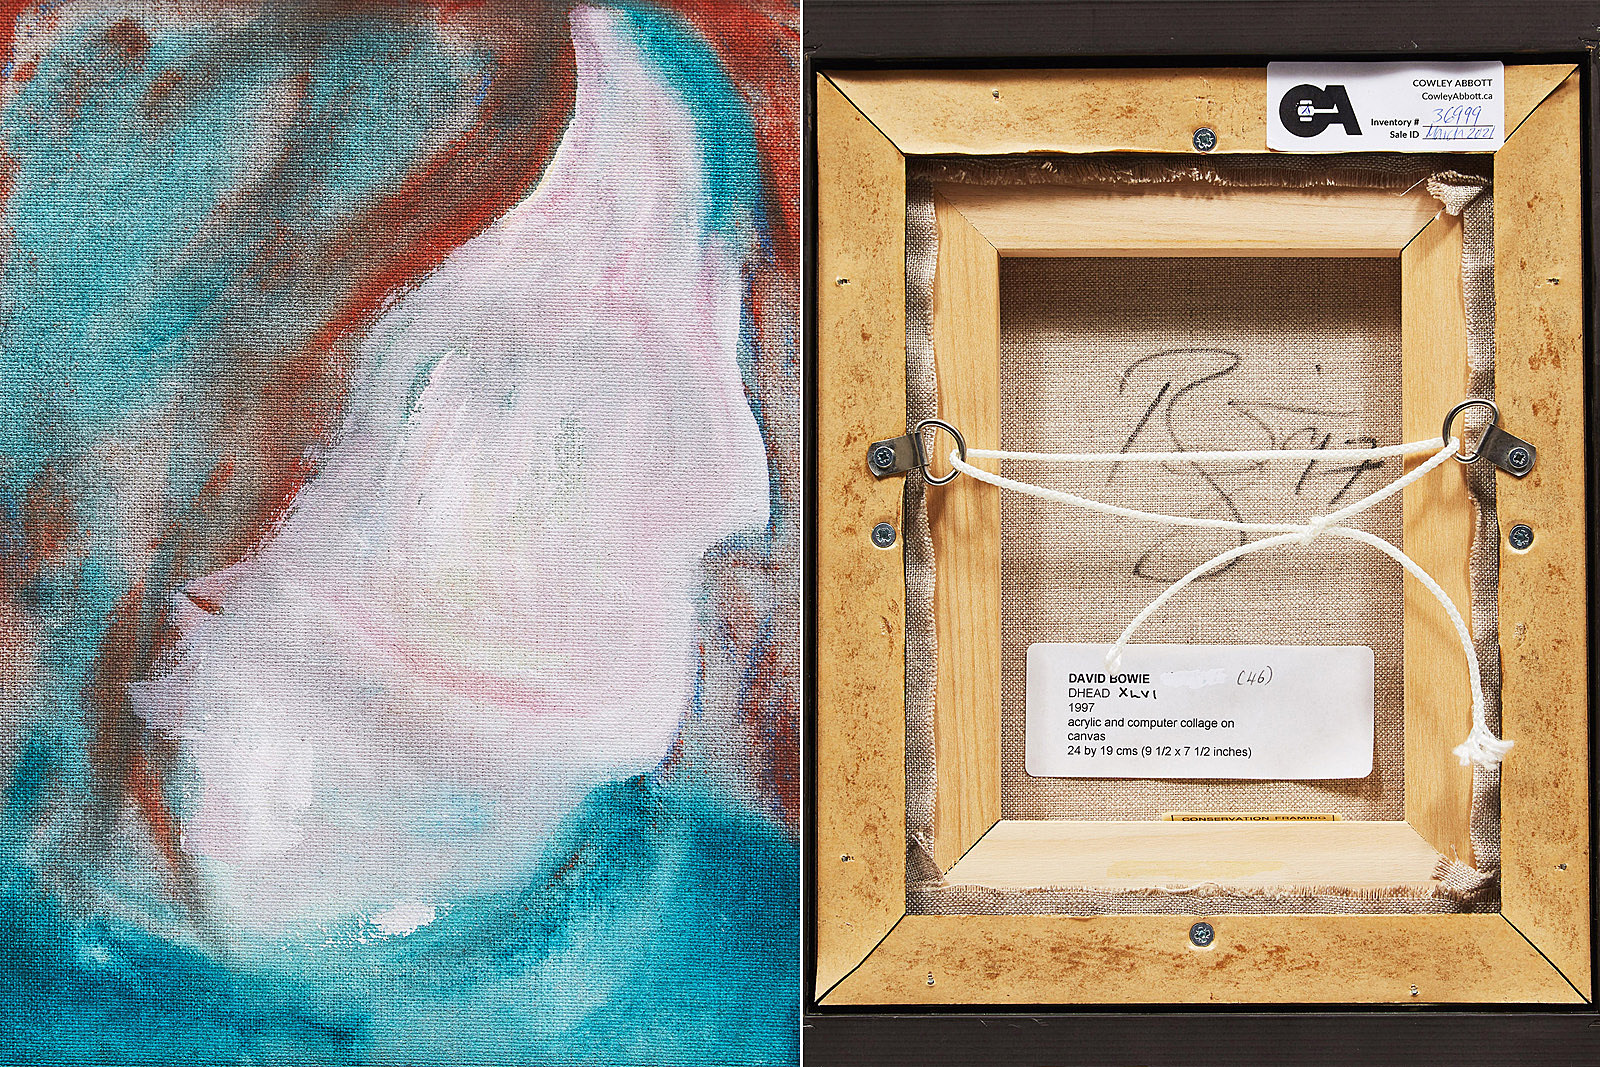 Rescued David Bowie Painting Will Sell for 10,000 Times its Price